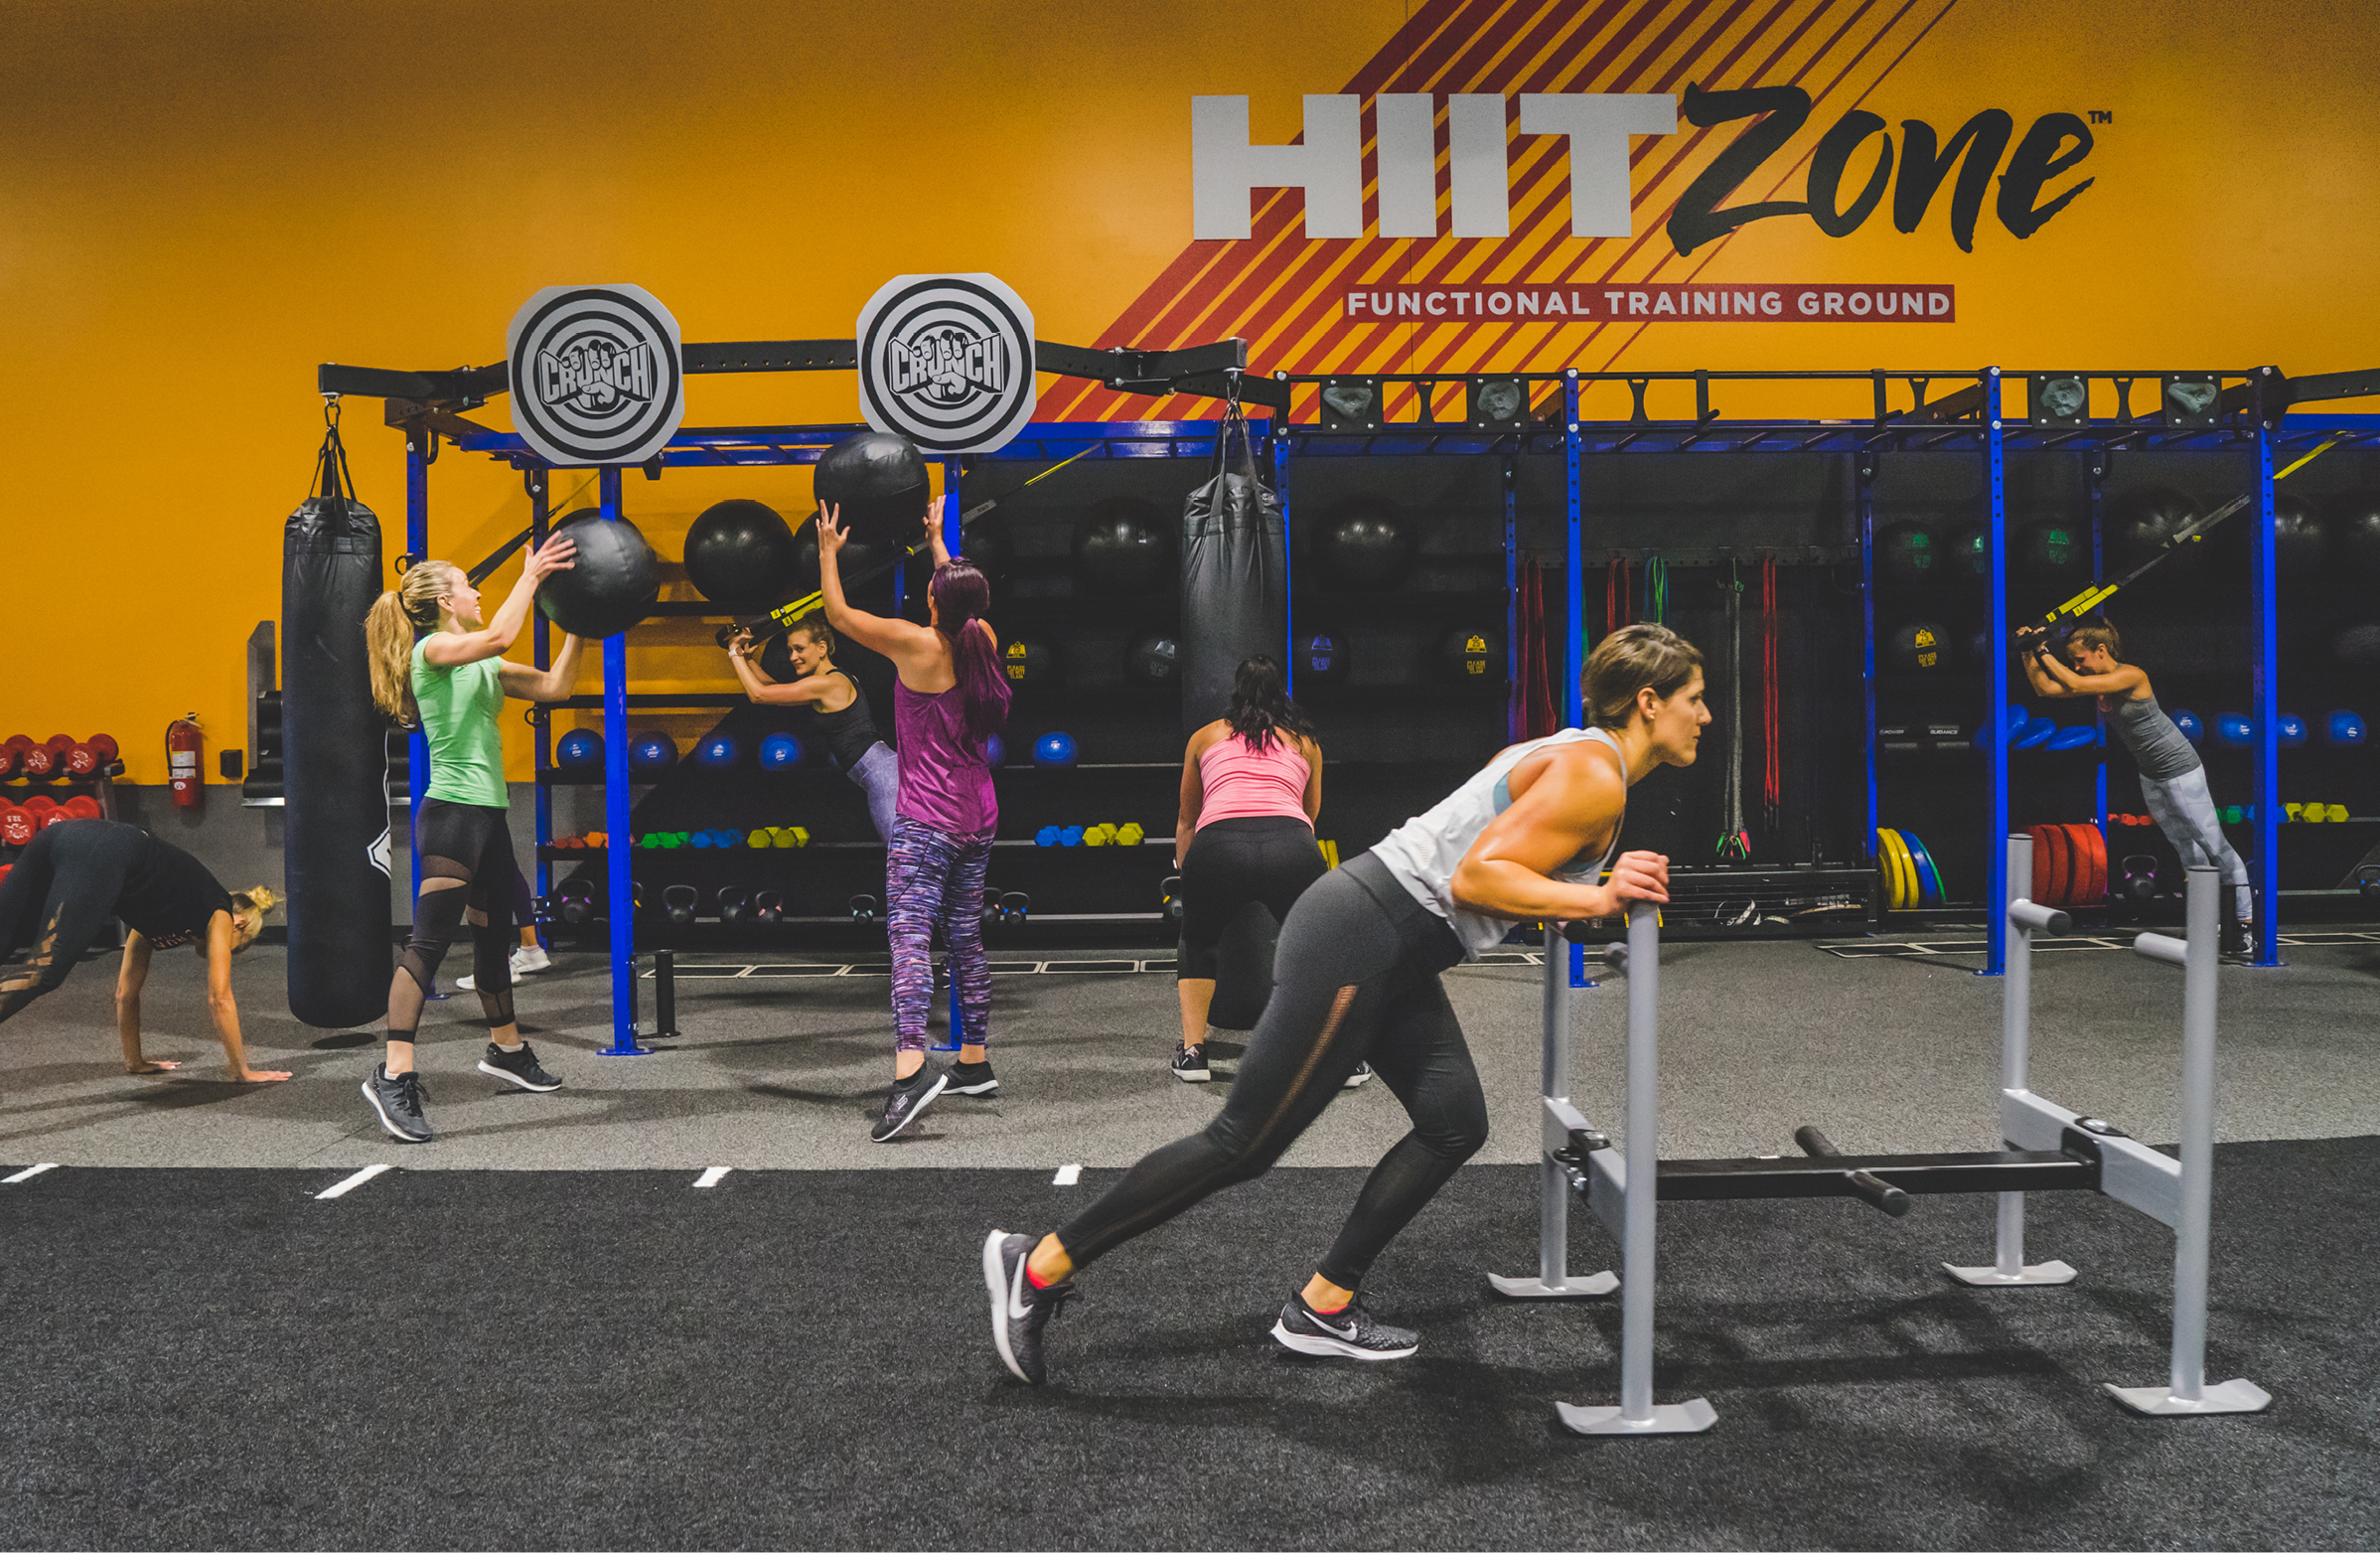 Open+club hiitzone